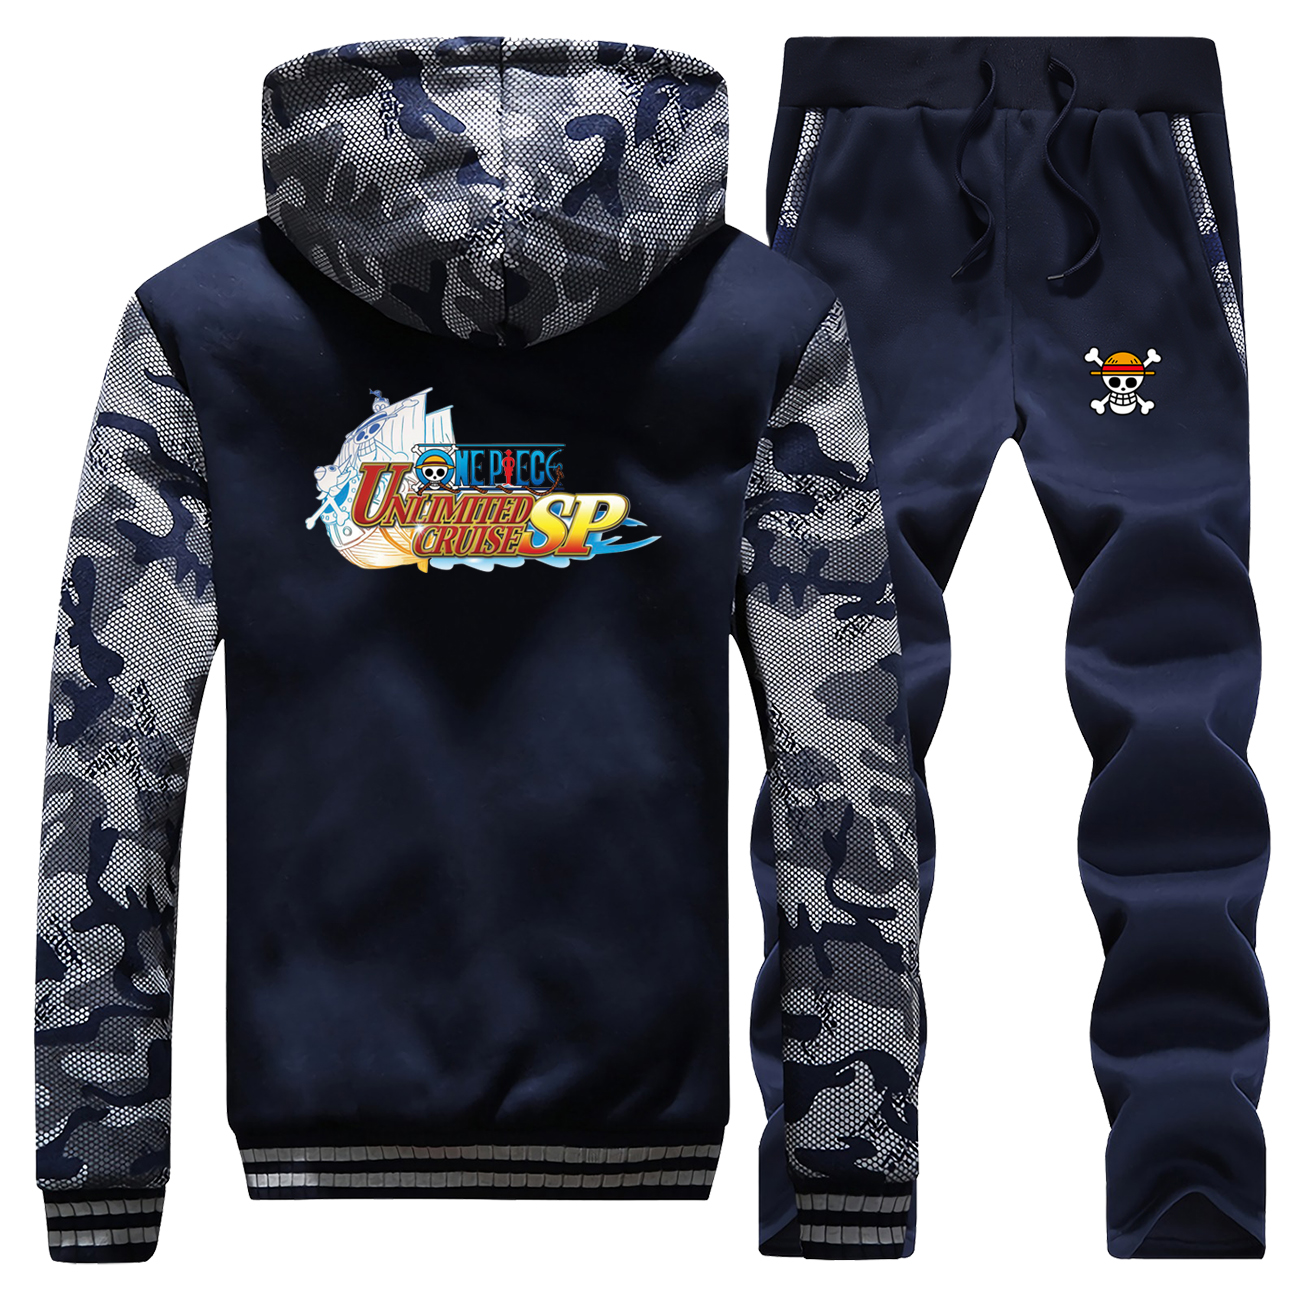 One Piece Tracksuits Jacket Pant Set Men Unlimited Cruise Sp Japan Anime The Straw Hat Pirates Luffy Suit 2 PCS Coat Sportswear